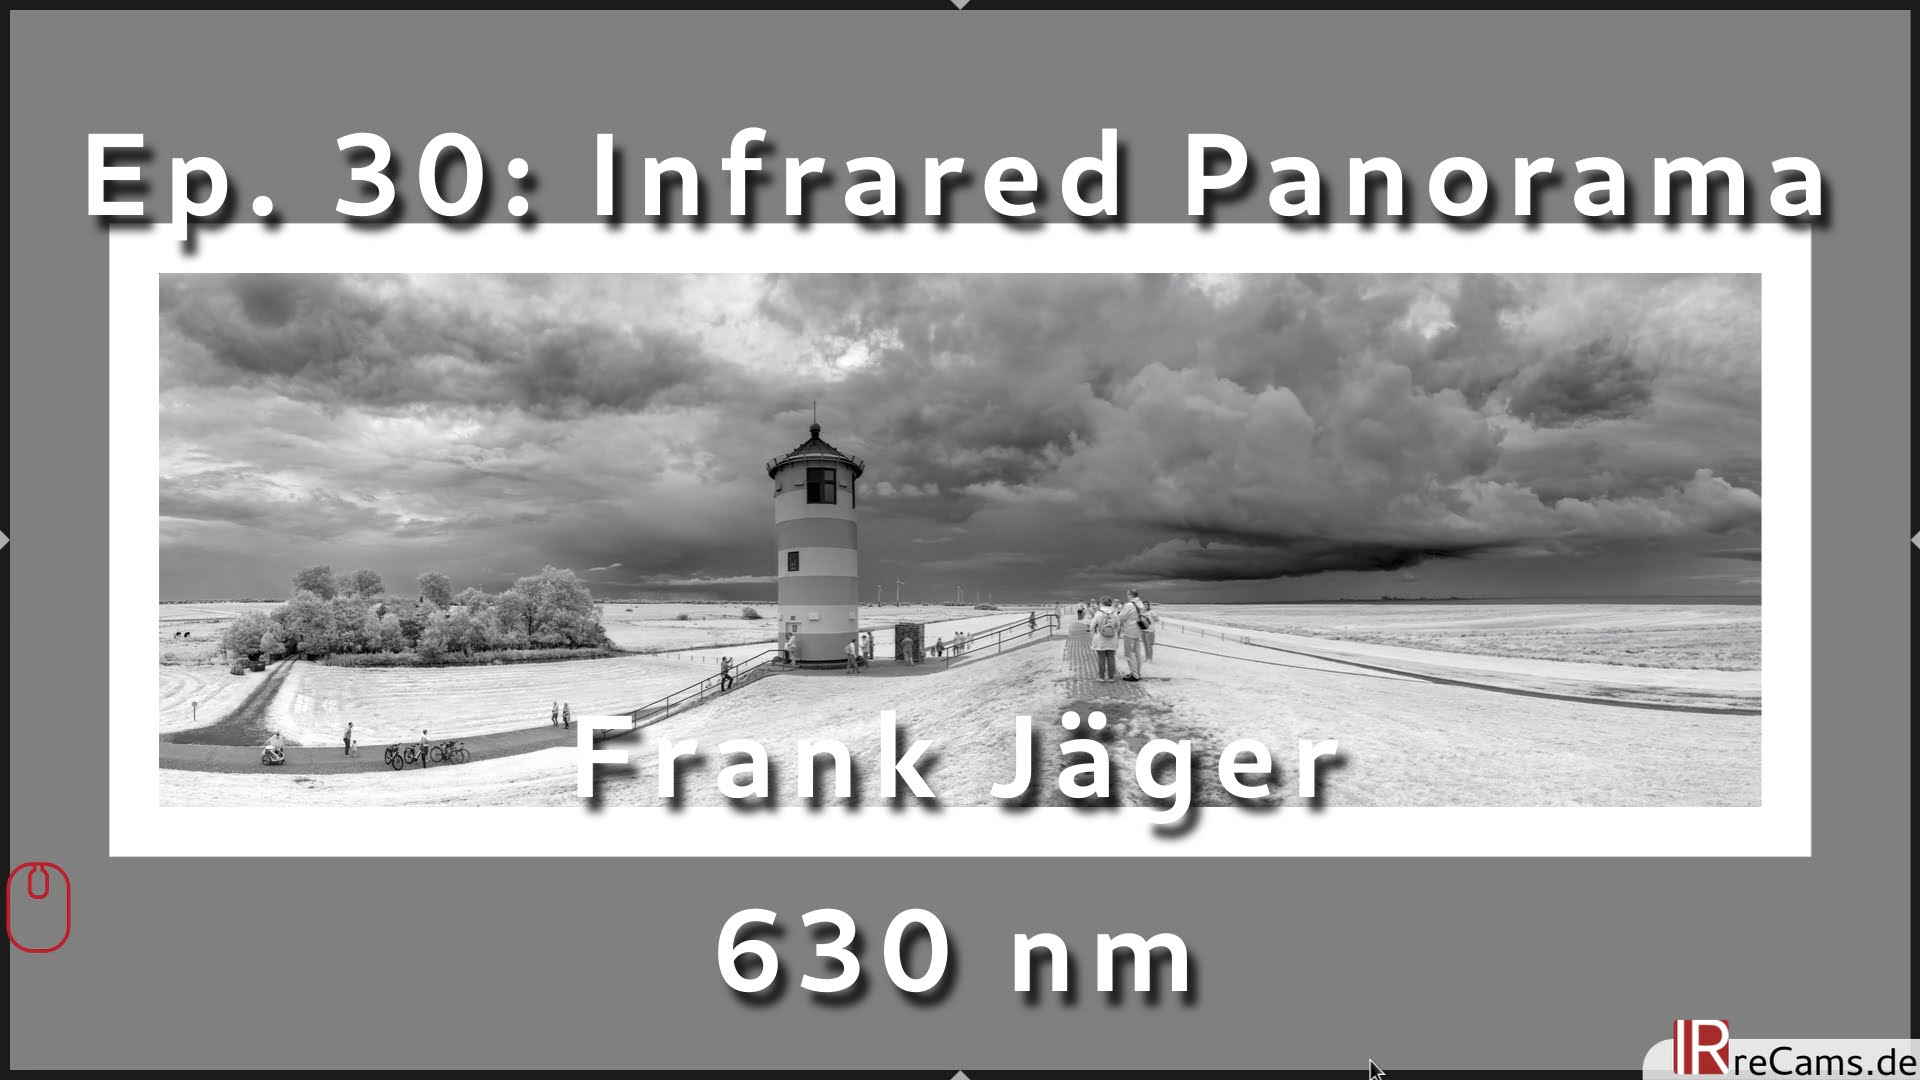 Ep. 30: How to create an Infrared Panorama with darktable and Hugin